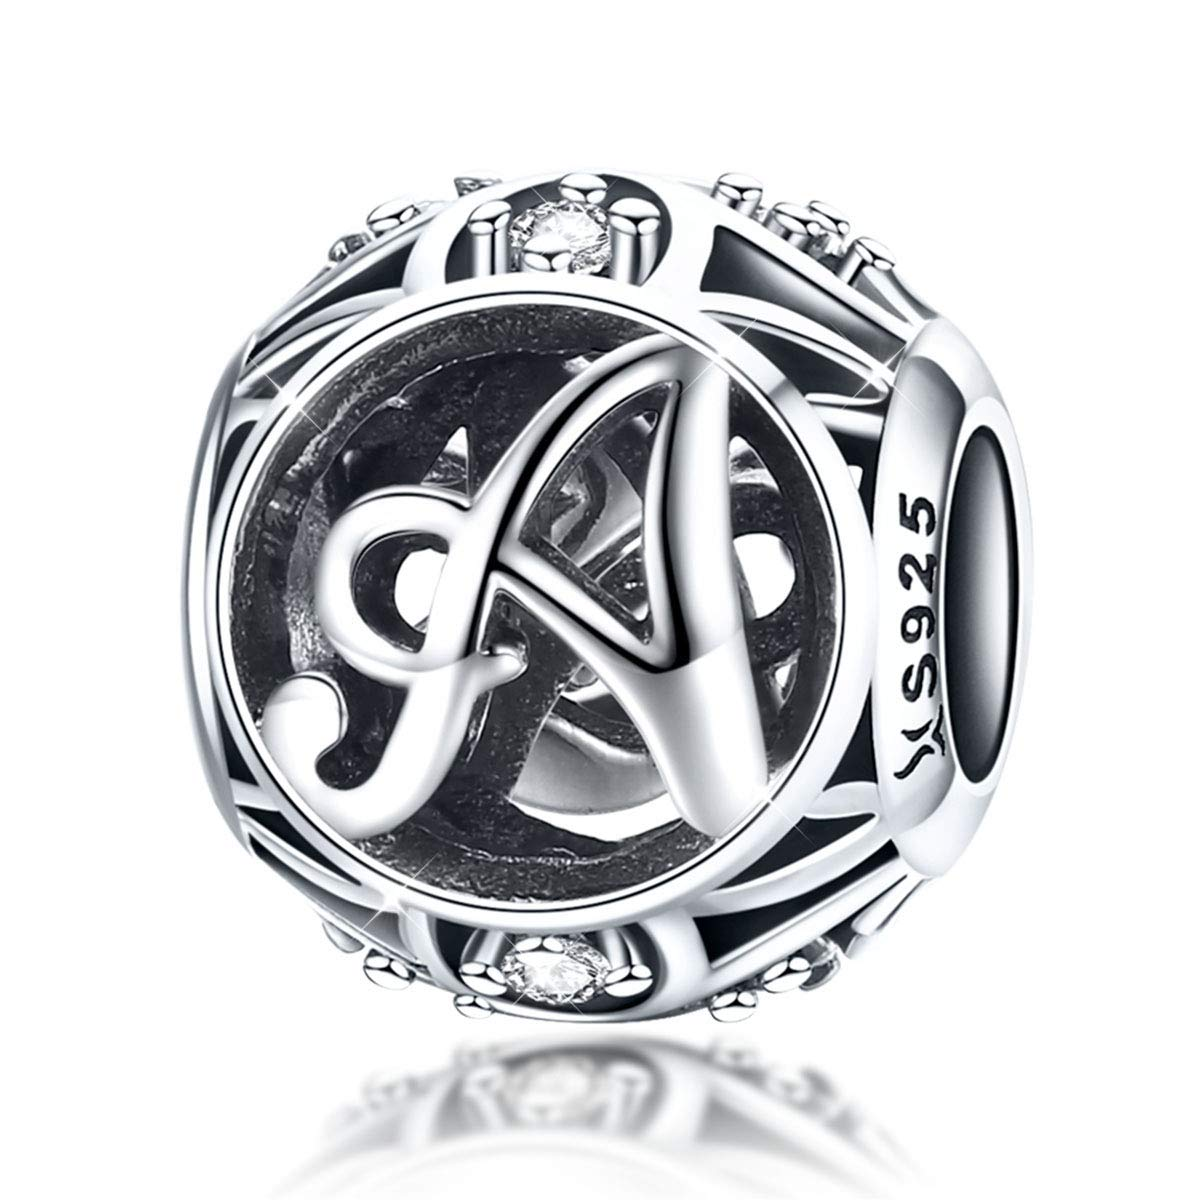 A Buchstabe Anhä nger Charm Sterling Silber 925 Zirkonia fü r Armbä nder und Halsketten Faona FAC738-A+gift